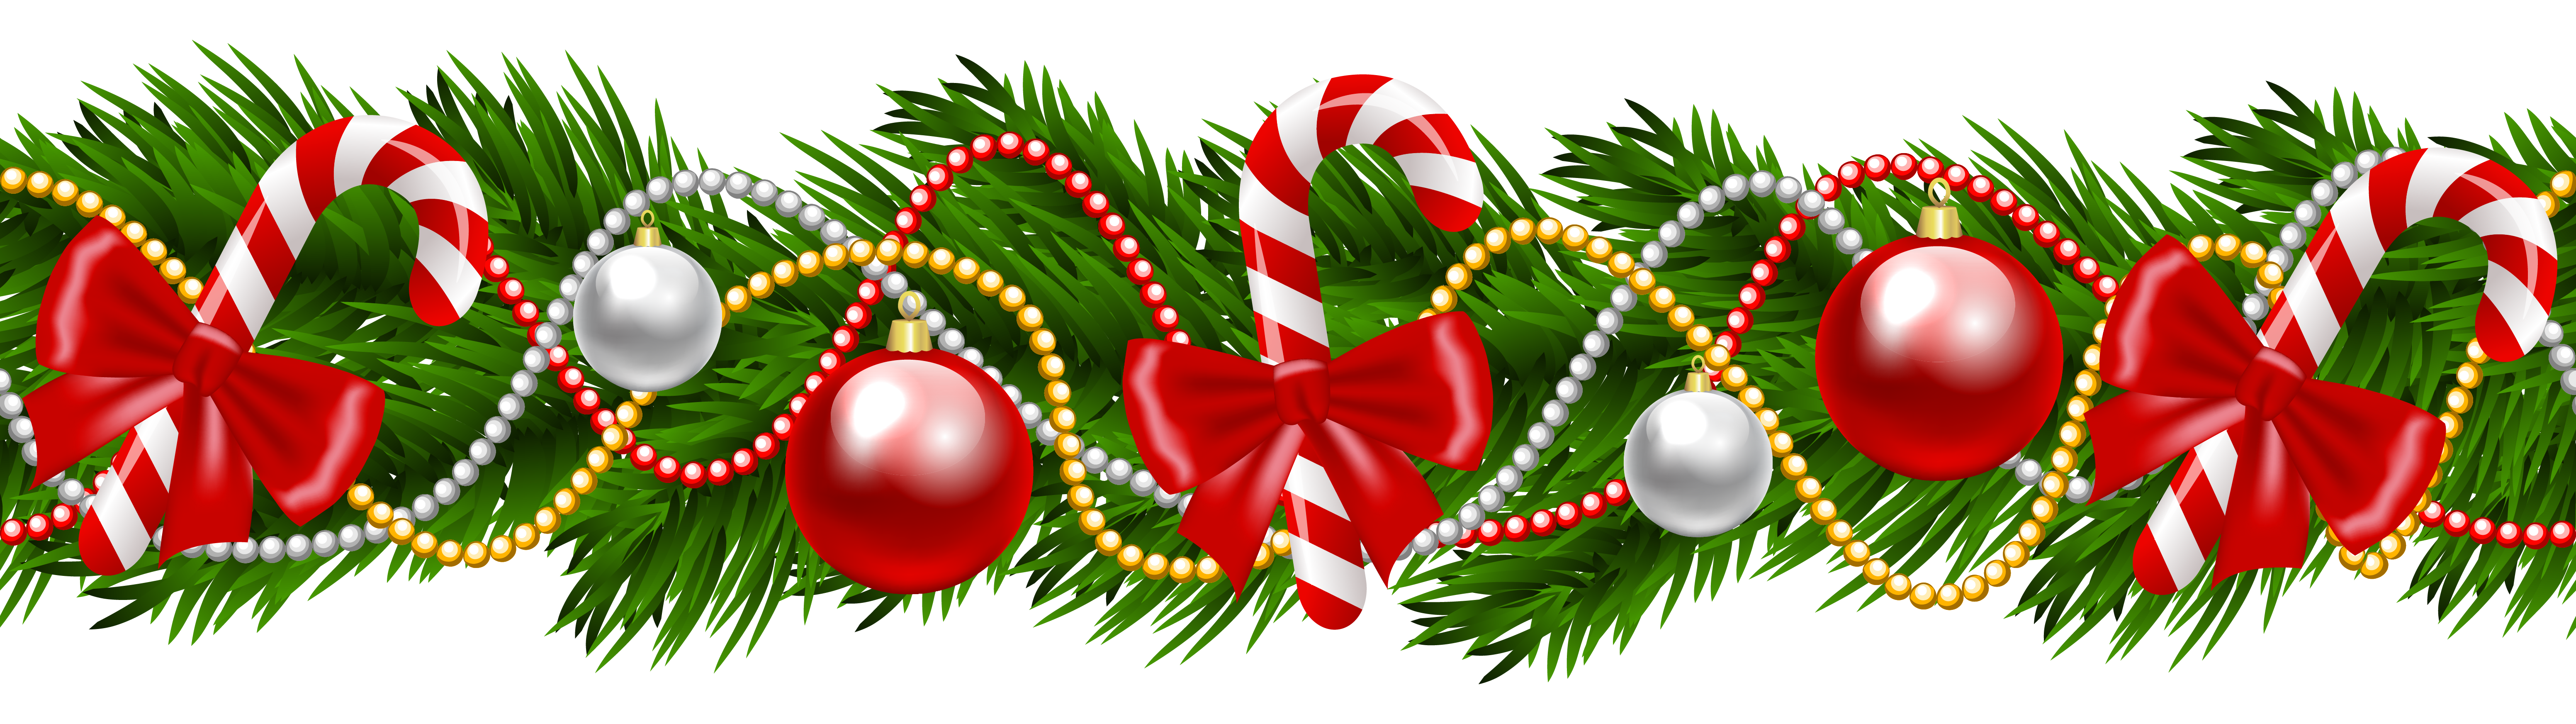 Poinsettia Garland Png - Christmas Pine Deco Garland PNG Clipart Image - Clip Art Library